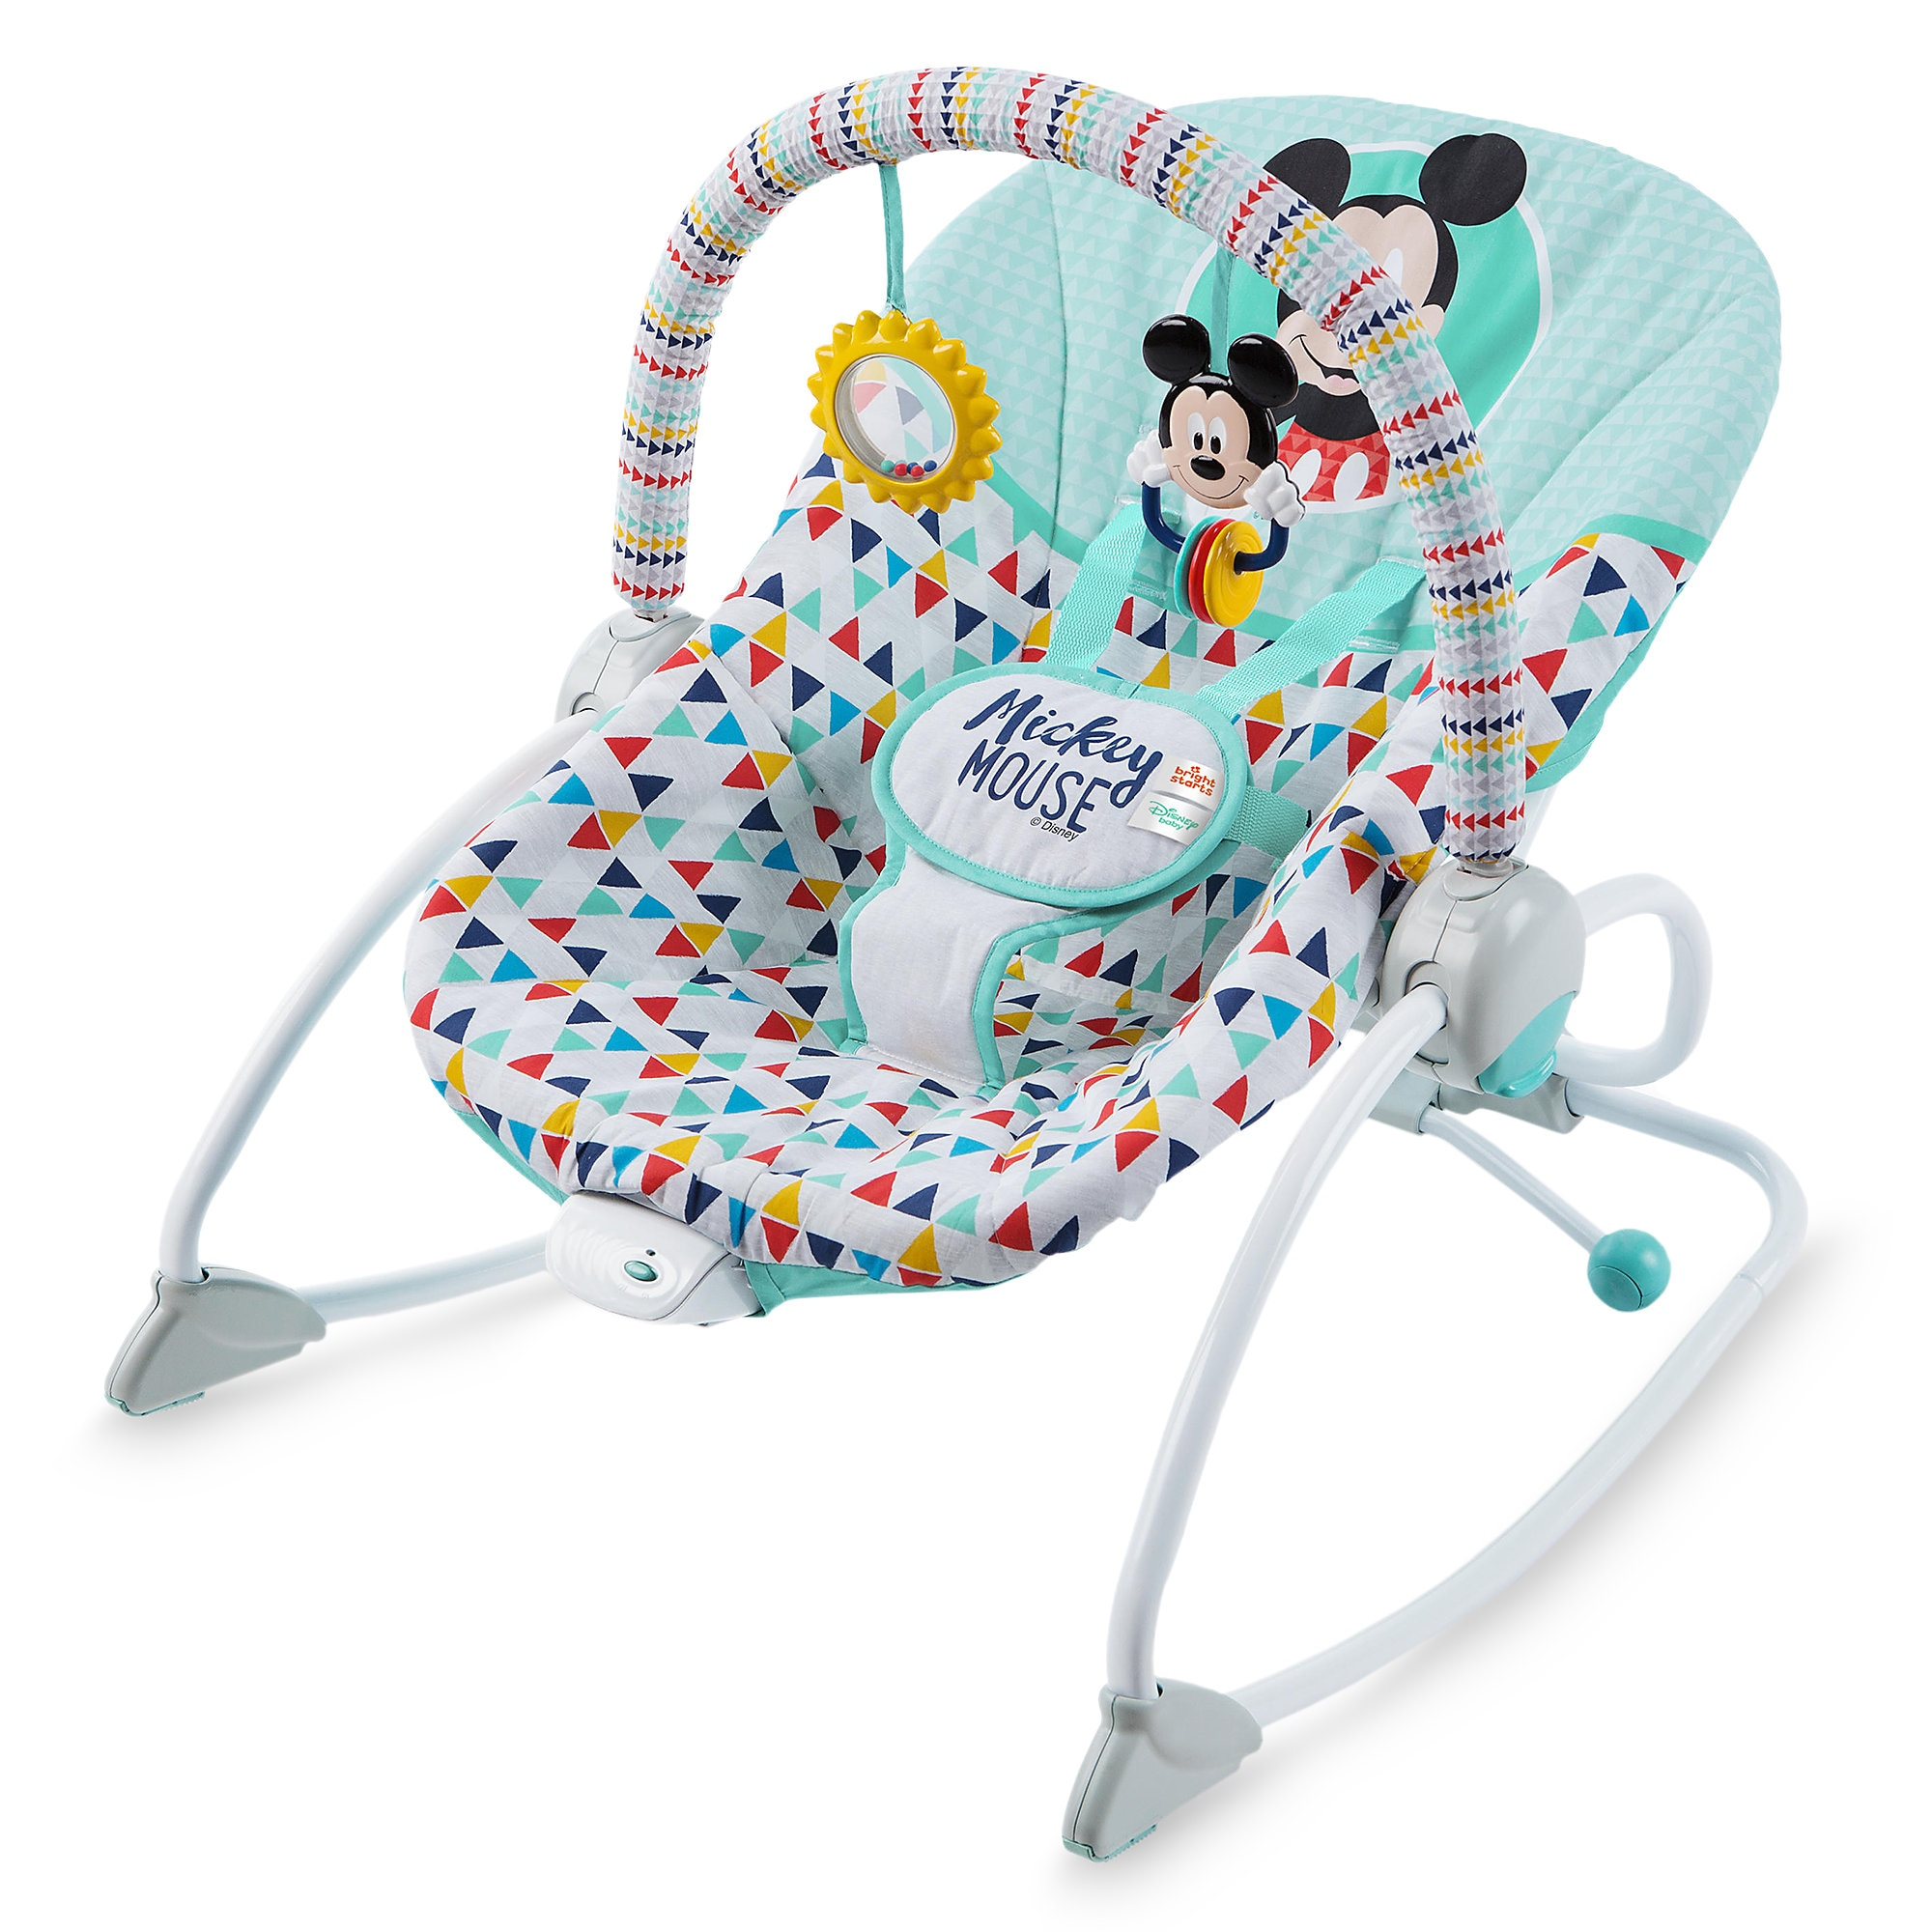 Mickey Mouse Chairs For Toddlers Mickey Mouse Infant To Toddler Rocker By Bright Starts